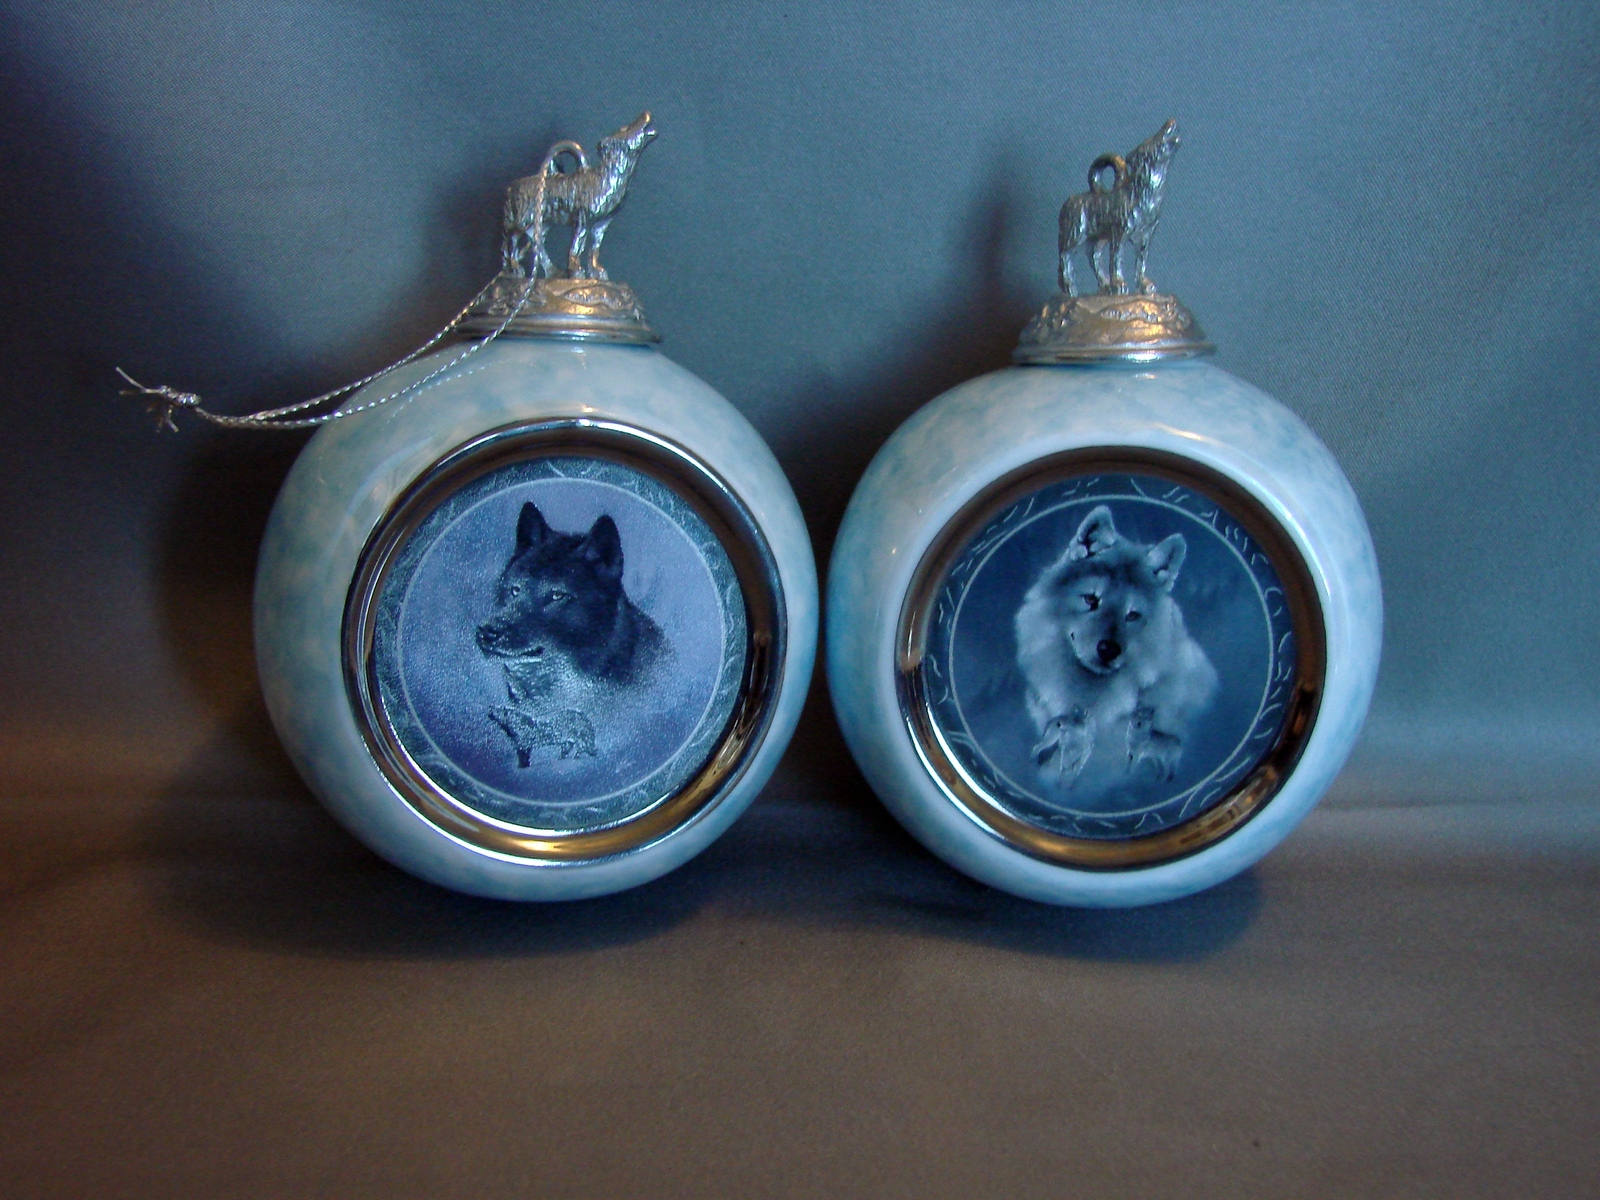 Bradford ExchangePorcelain Wolf Ornaments: Black Knight Knight & Silver Scout (1